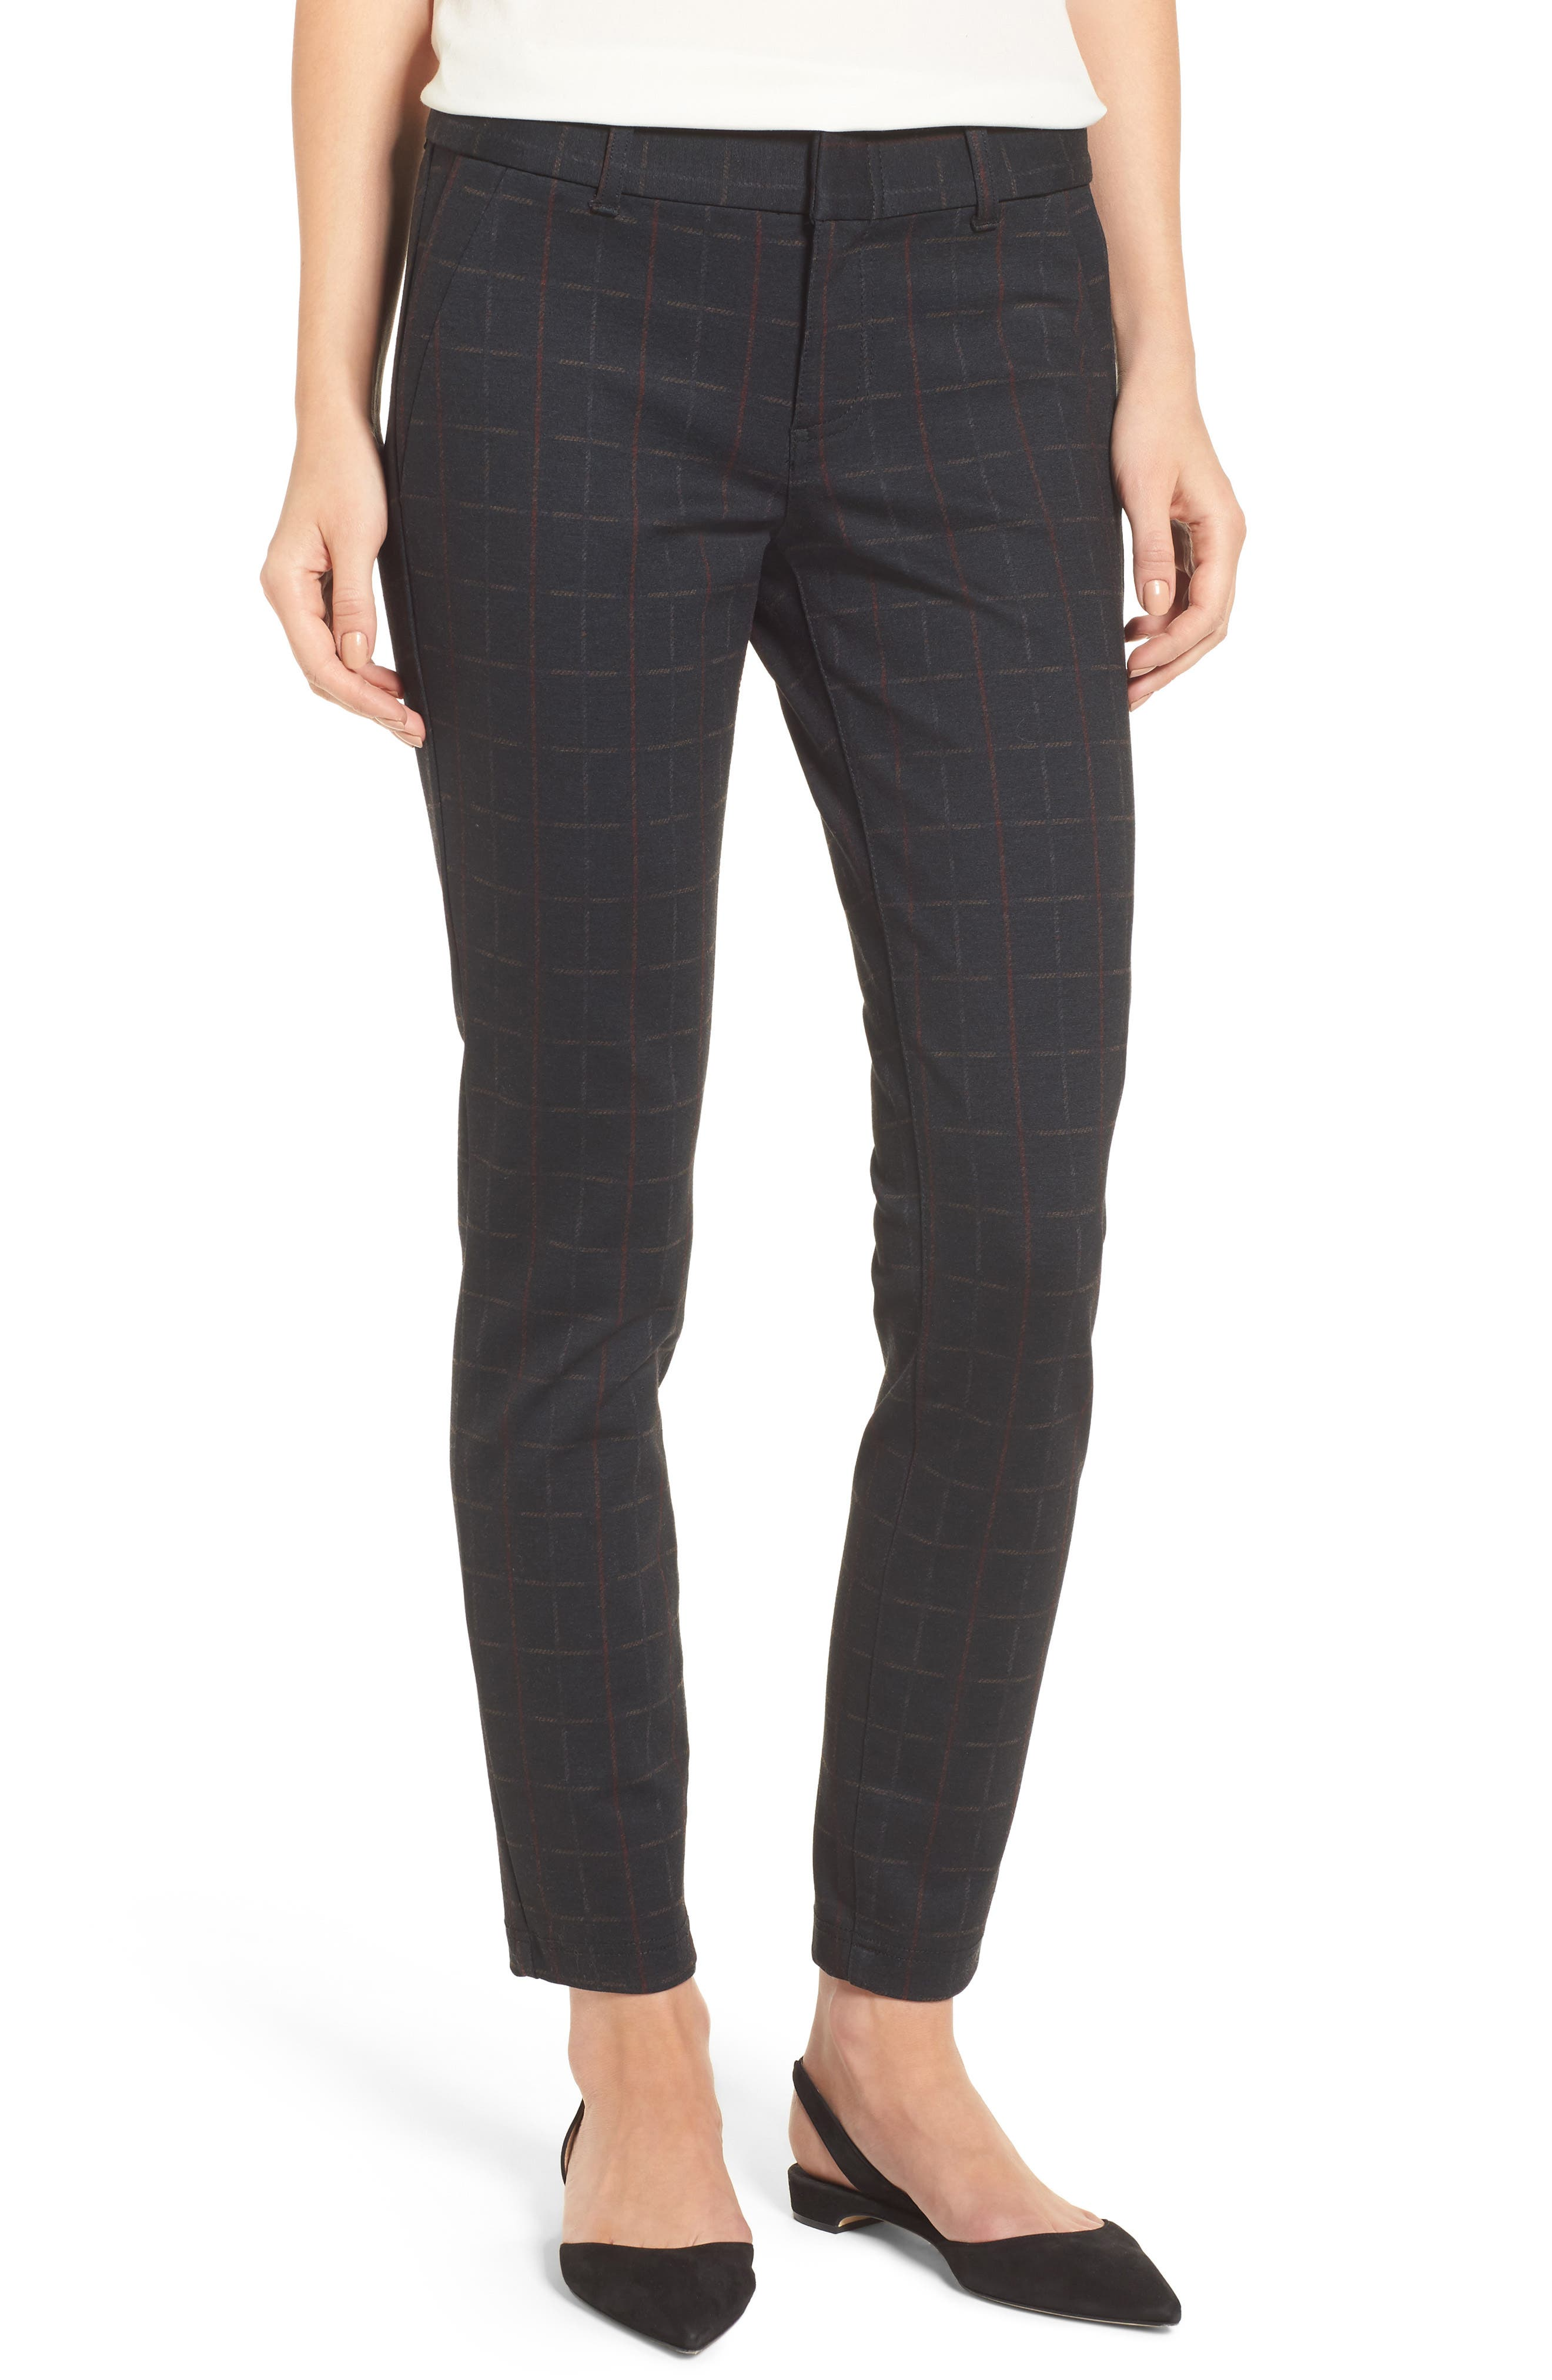 Alternate Image 1 Selected - KUT from the Kloth Mia Plaid Ankle Skinny Pants